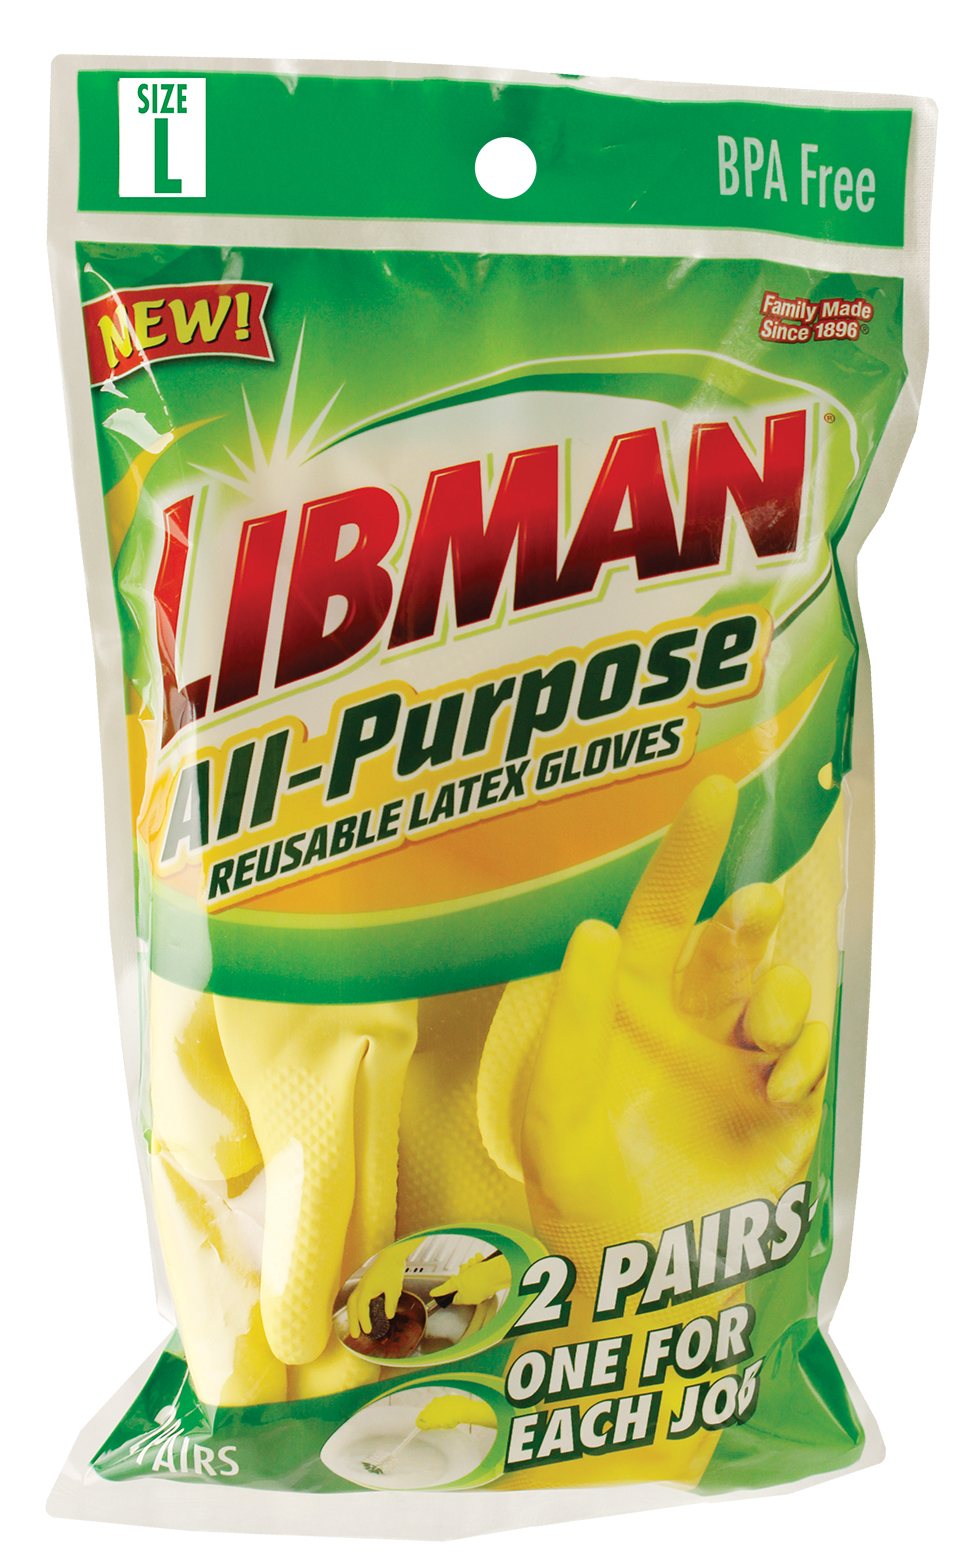 Libman Large All-Purpose Latex Gloves, 2 Pairs, Yellow